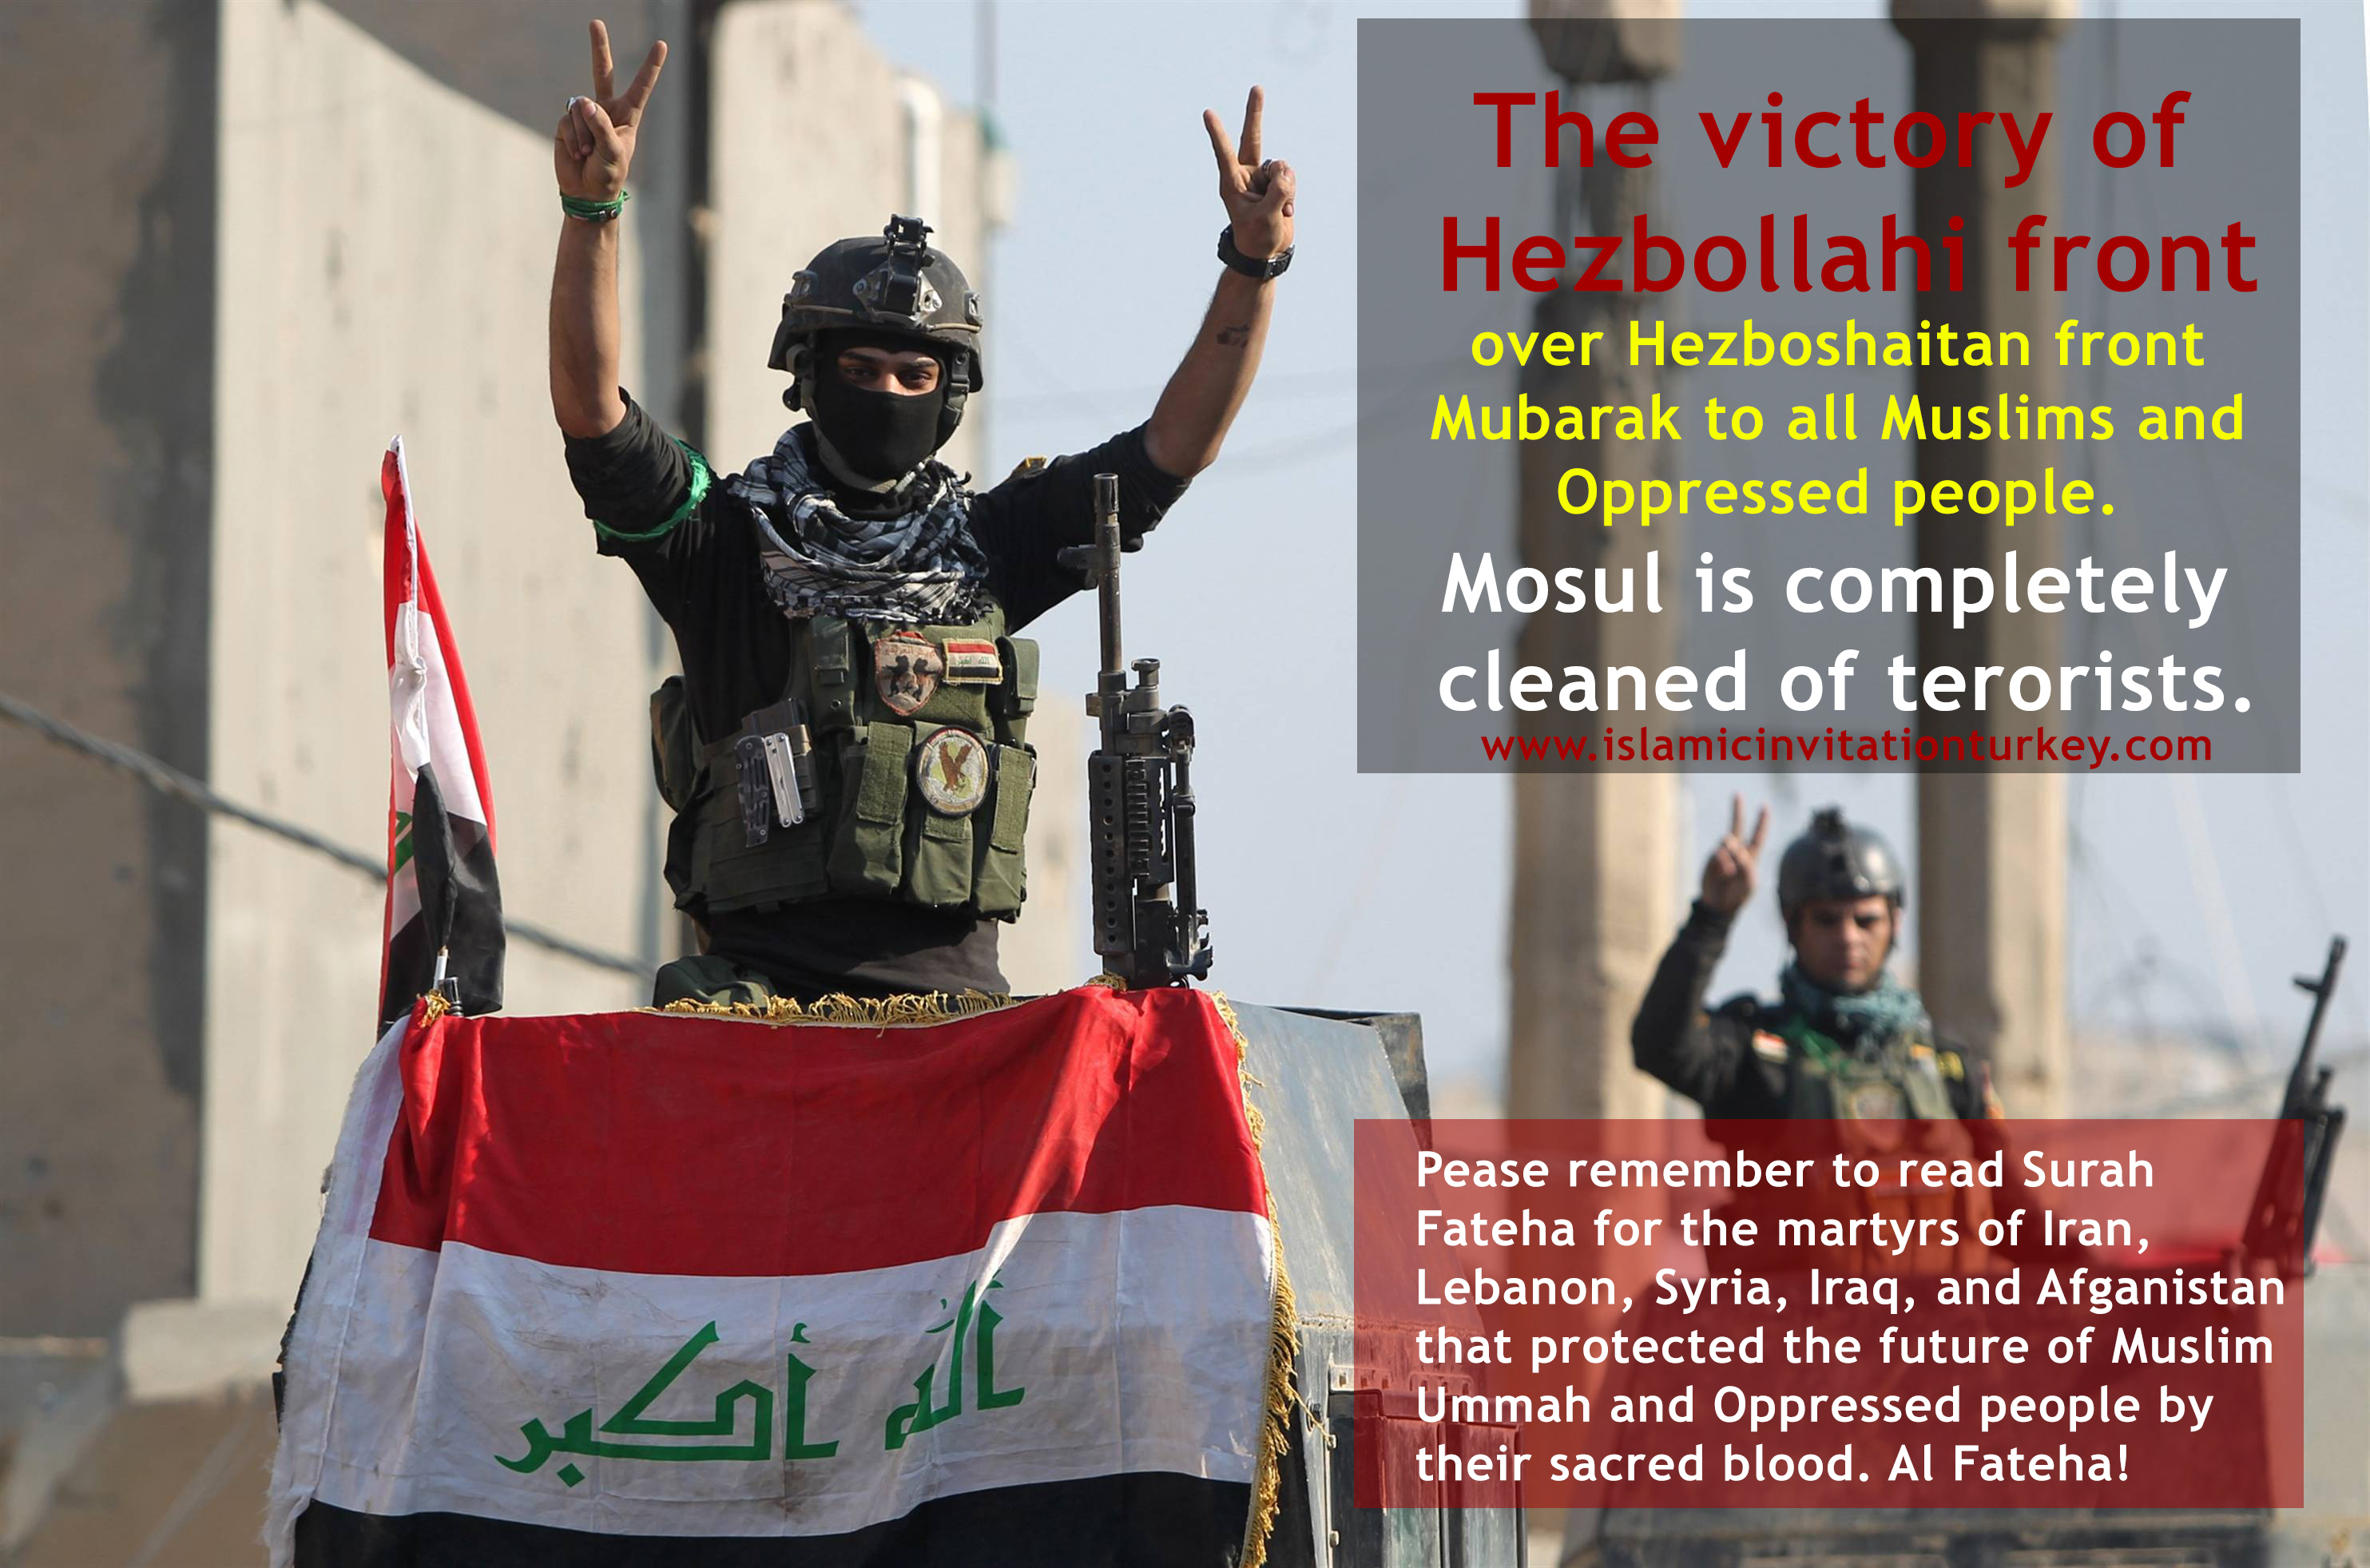 Photo of The victory of Hezbollahi front over Hezboshaitan front Mubarak to all Muslims and Oppressed people. Mosul is completely cleaned of terorists.